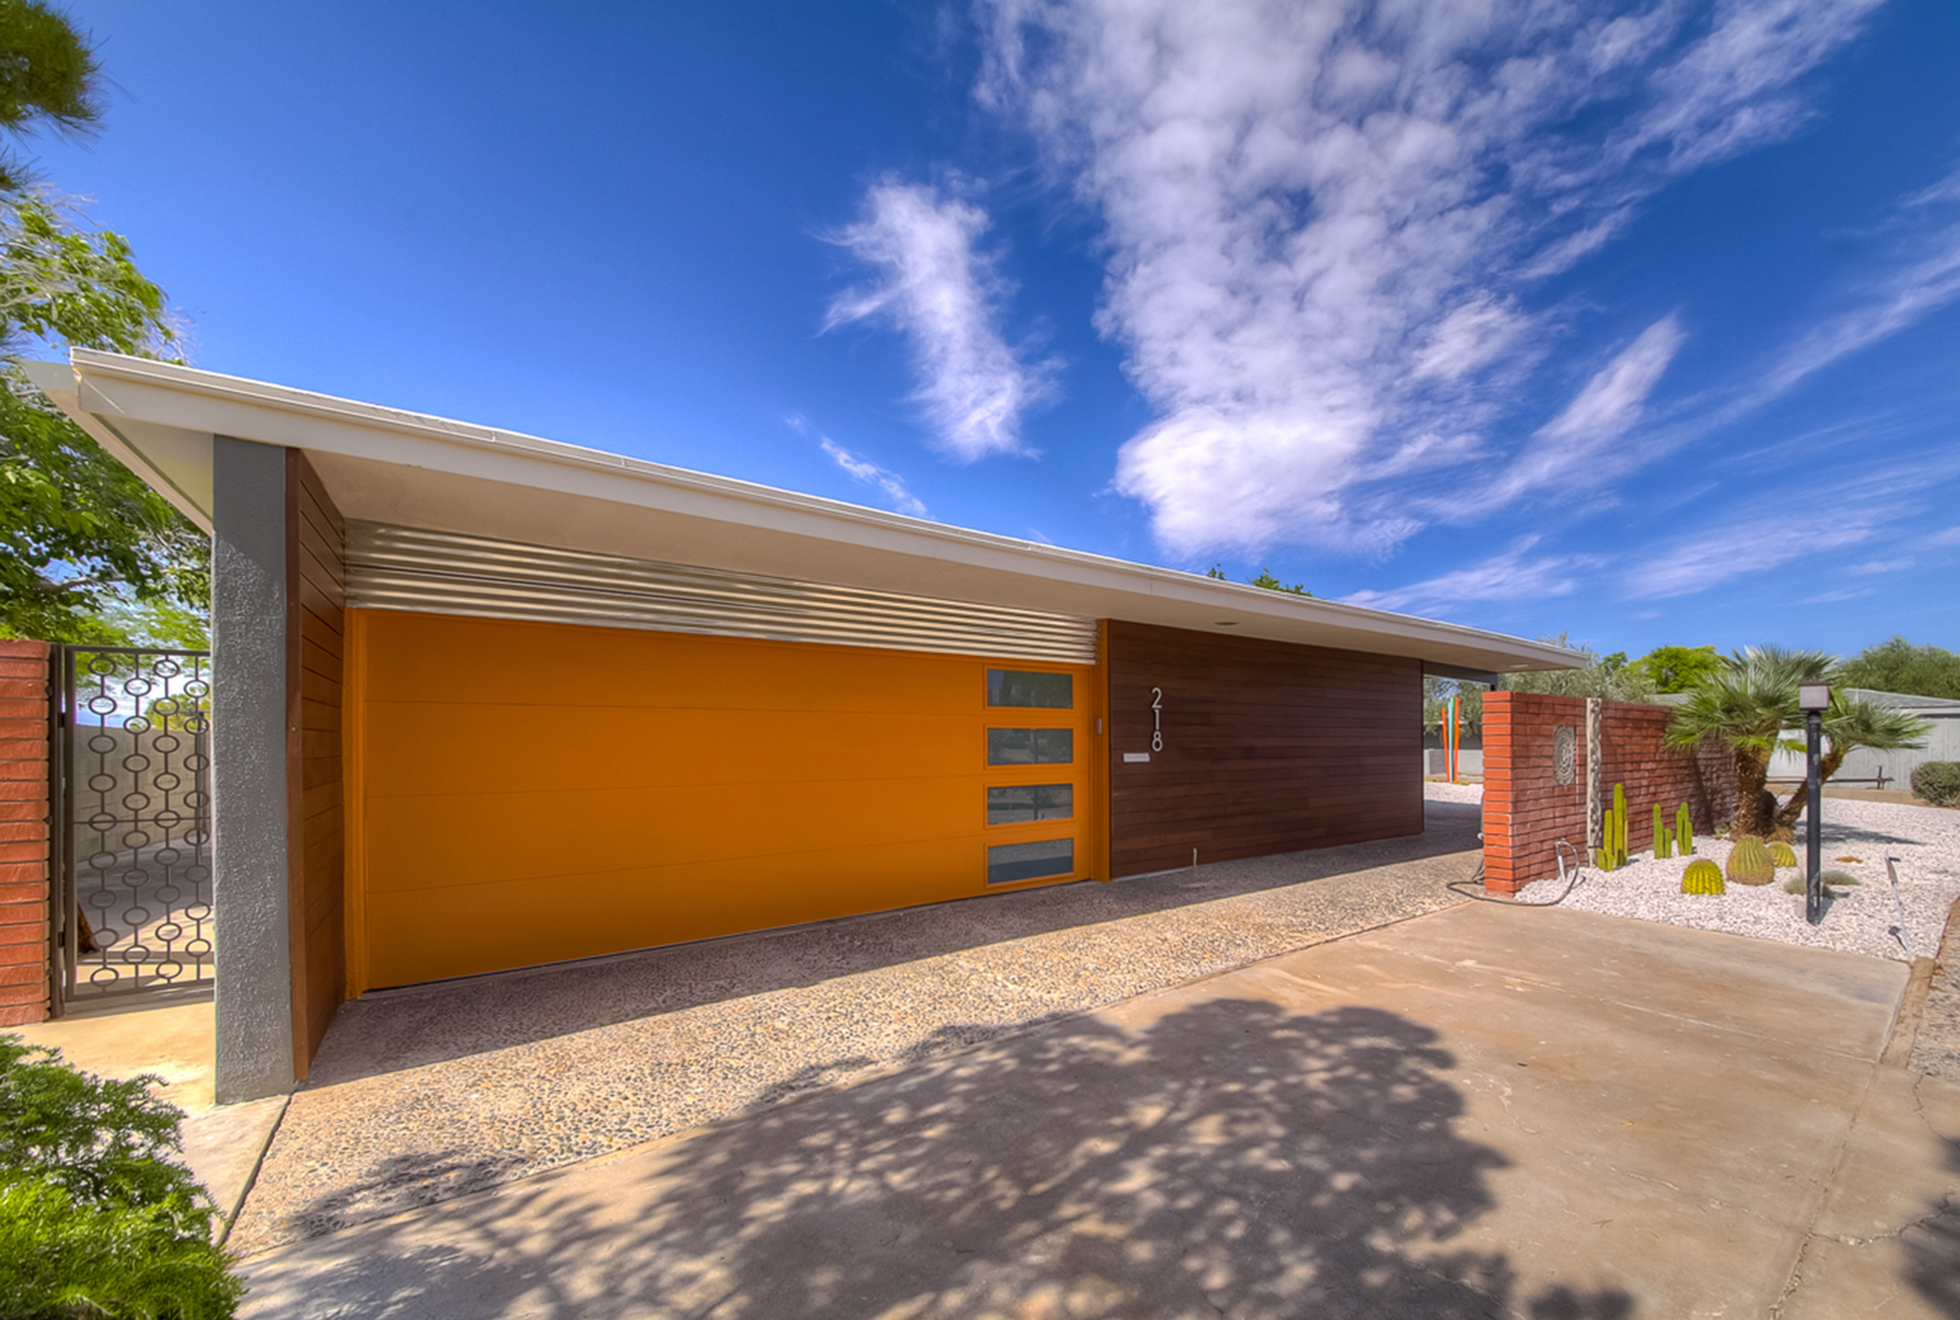 Orange garage door on mid-century modern California home